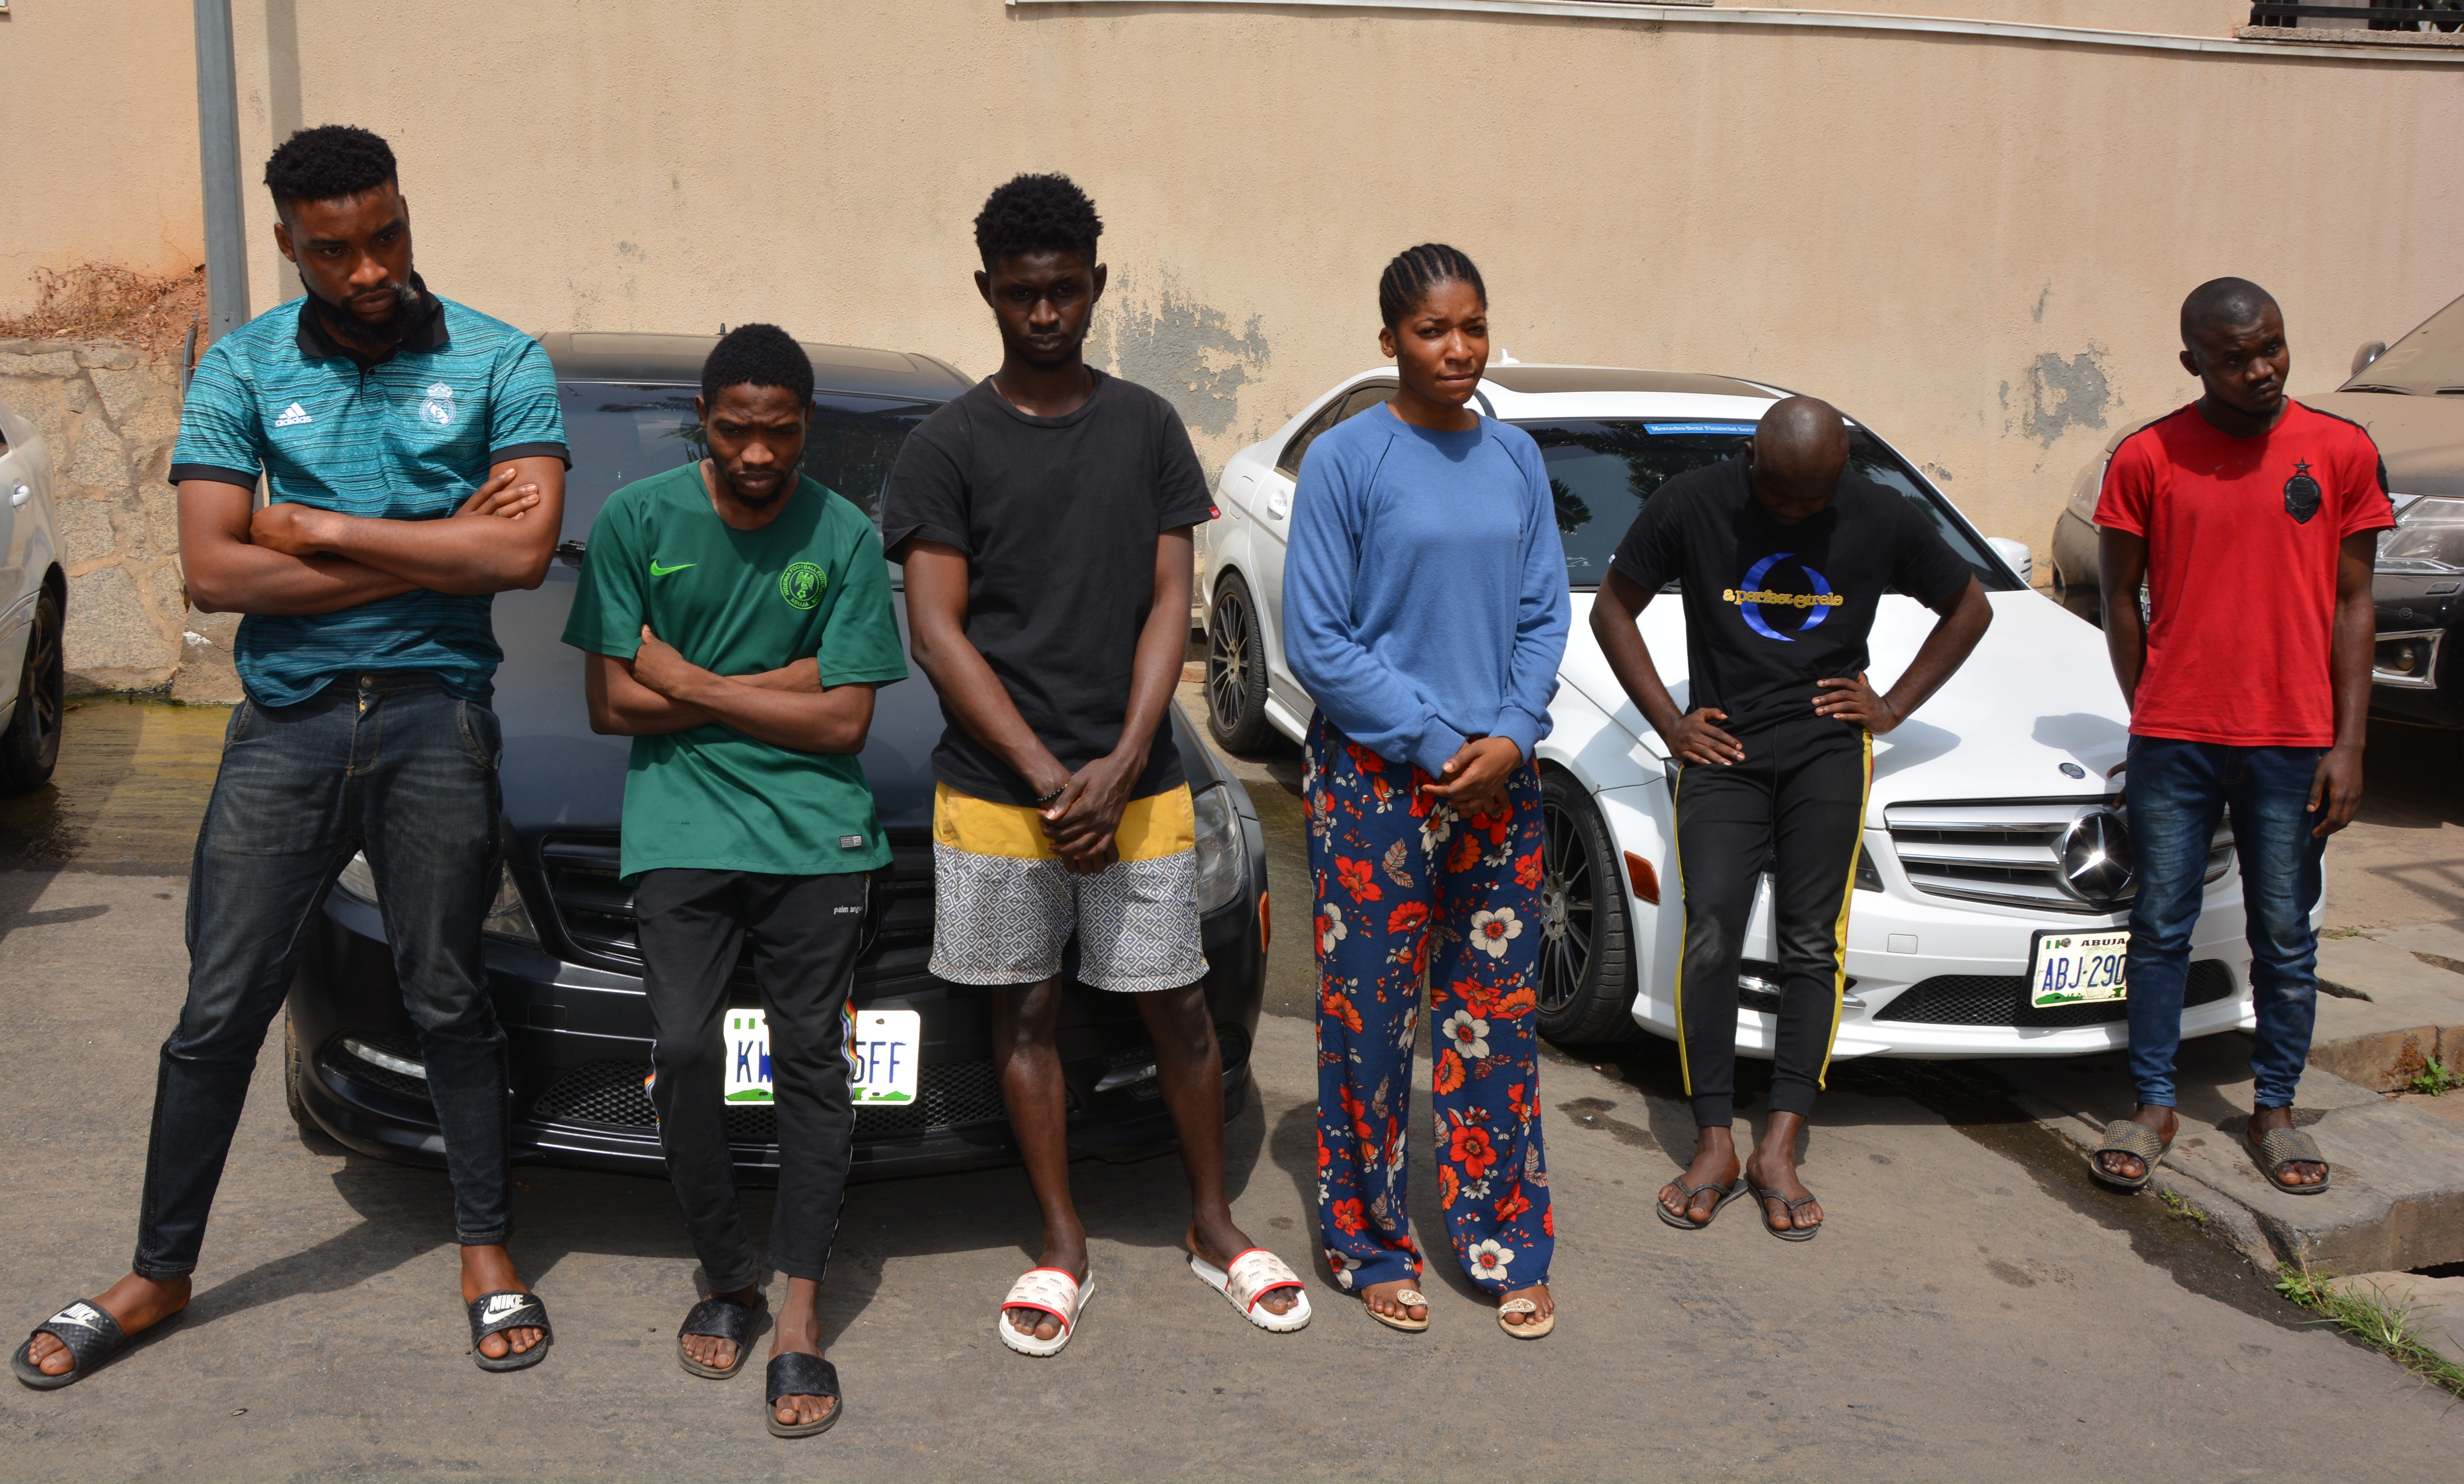 EFCC nabs 10 suspected internet fraudsters in Abuja - Daily Post Nigeria